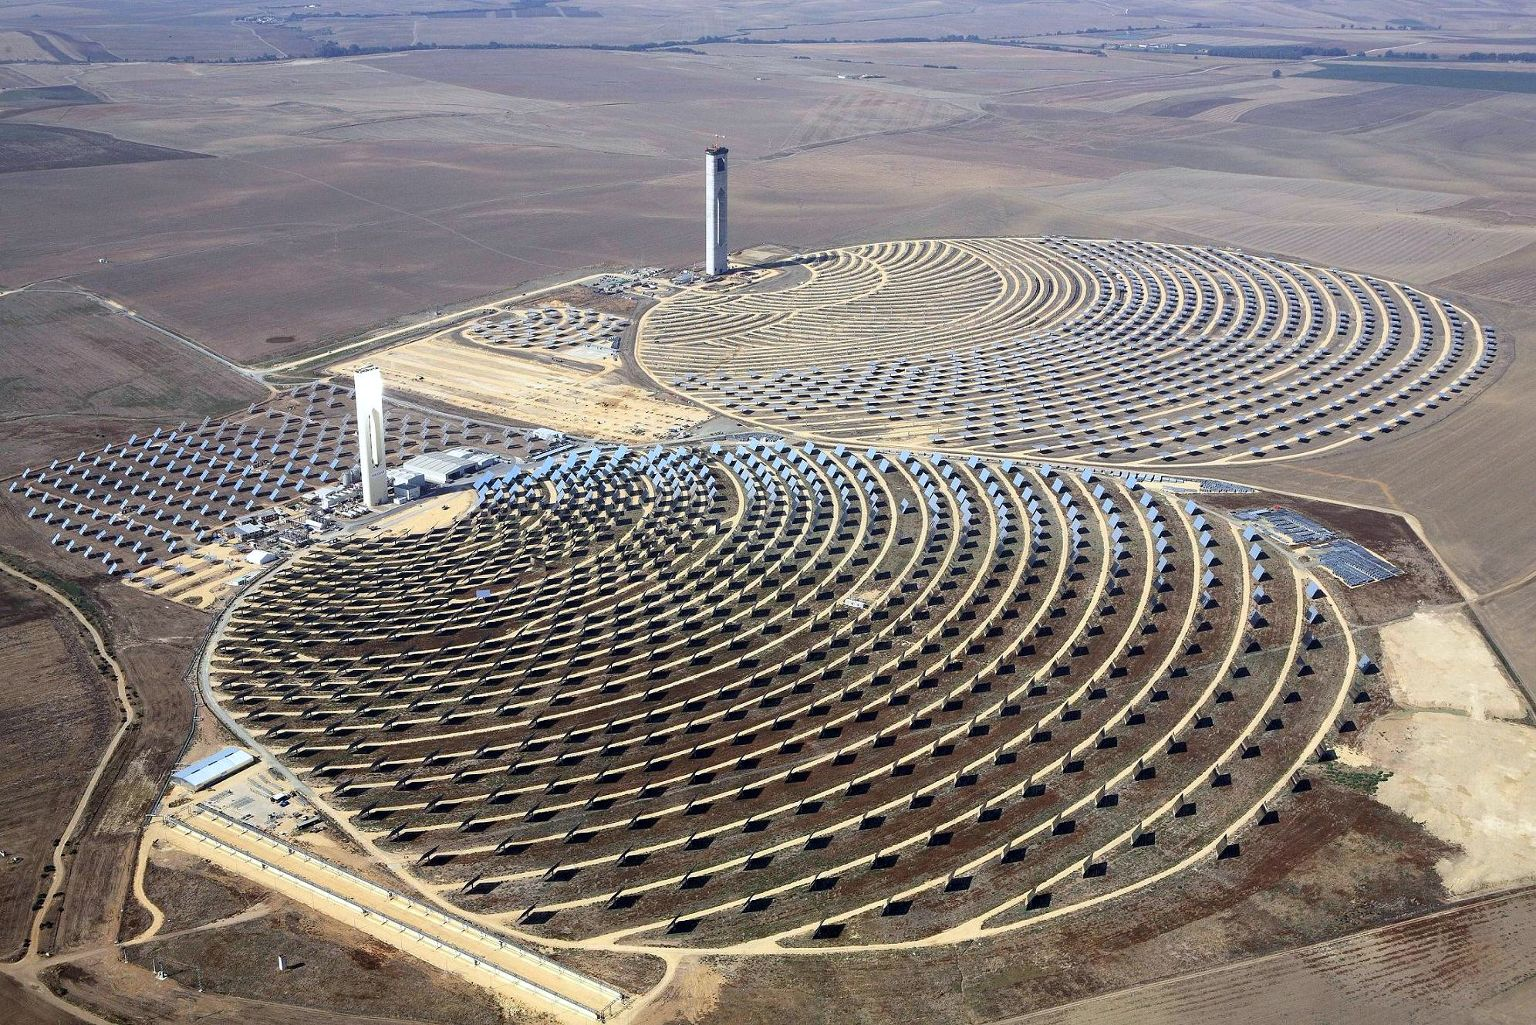 Centrale solaire en Andalousie (photo Koza1983 via Wikimedia)